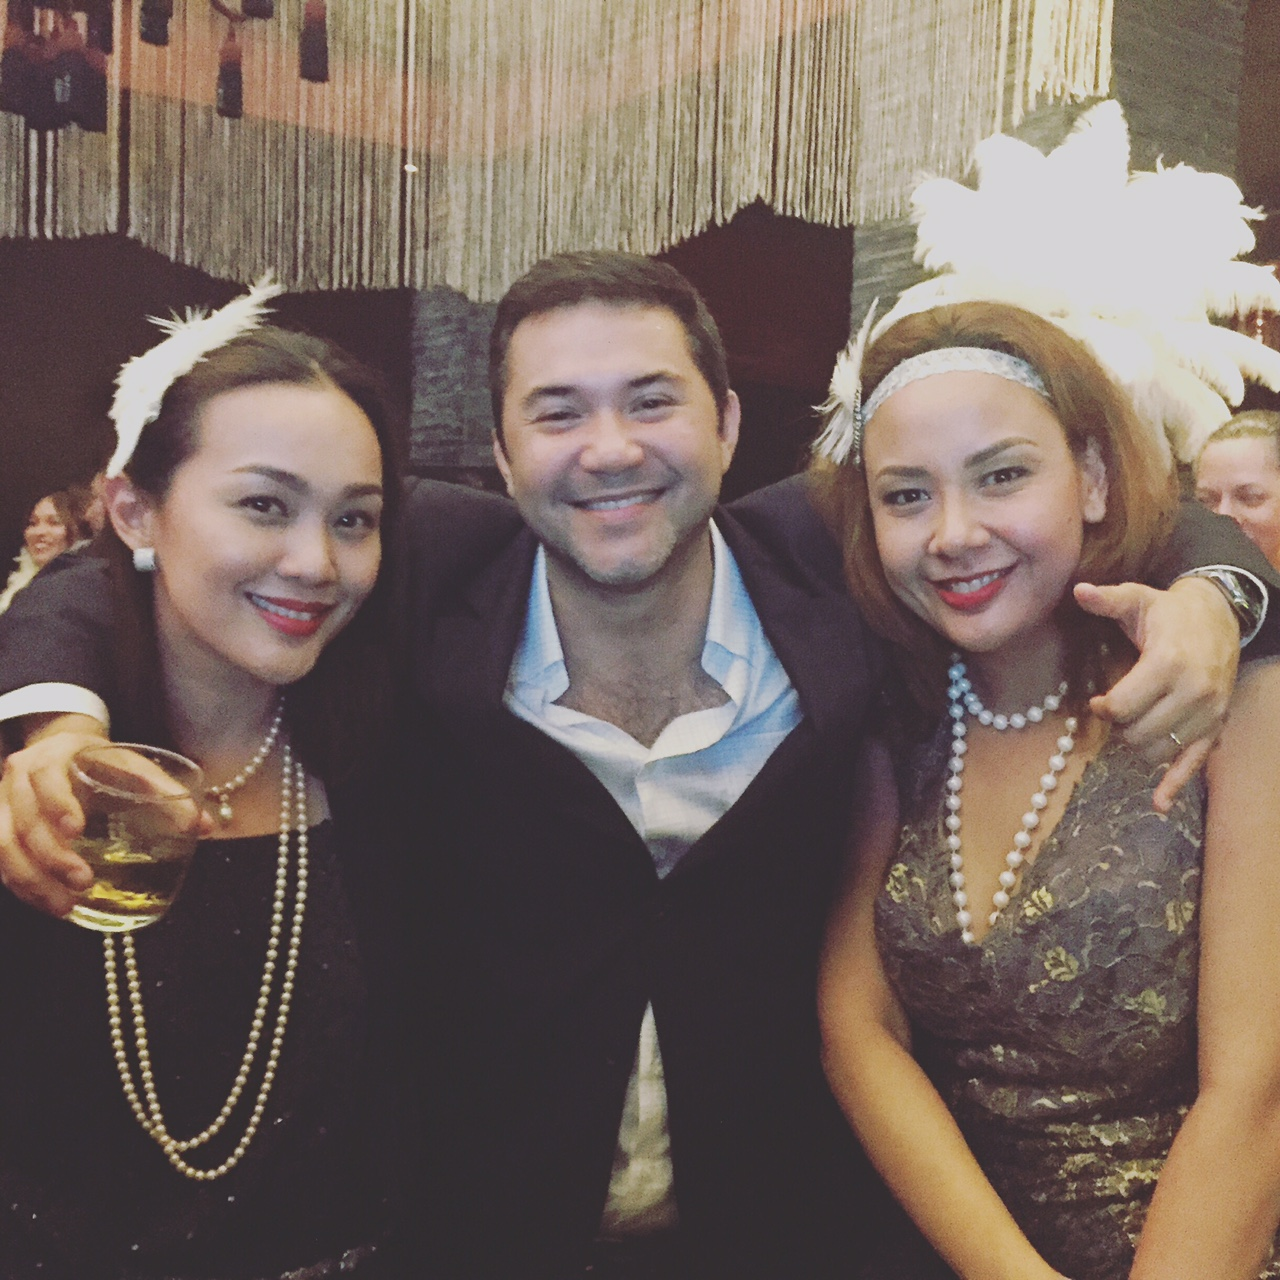 (From L-R) Yours truly with Shakey's top dog, Chukri Prieto and my partner at ARC Public Relations, Inc., Jenny Yrasuegui